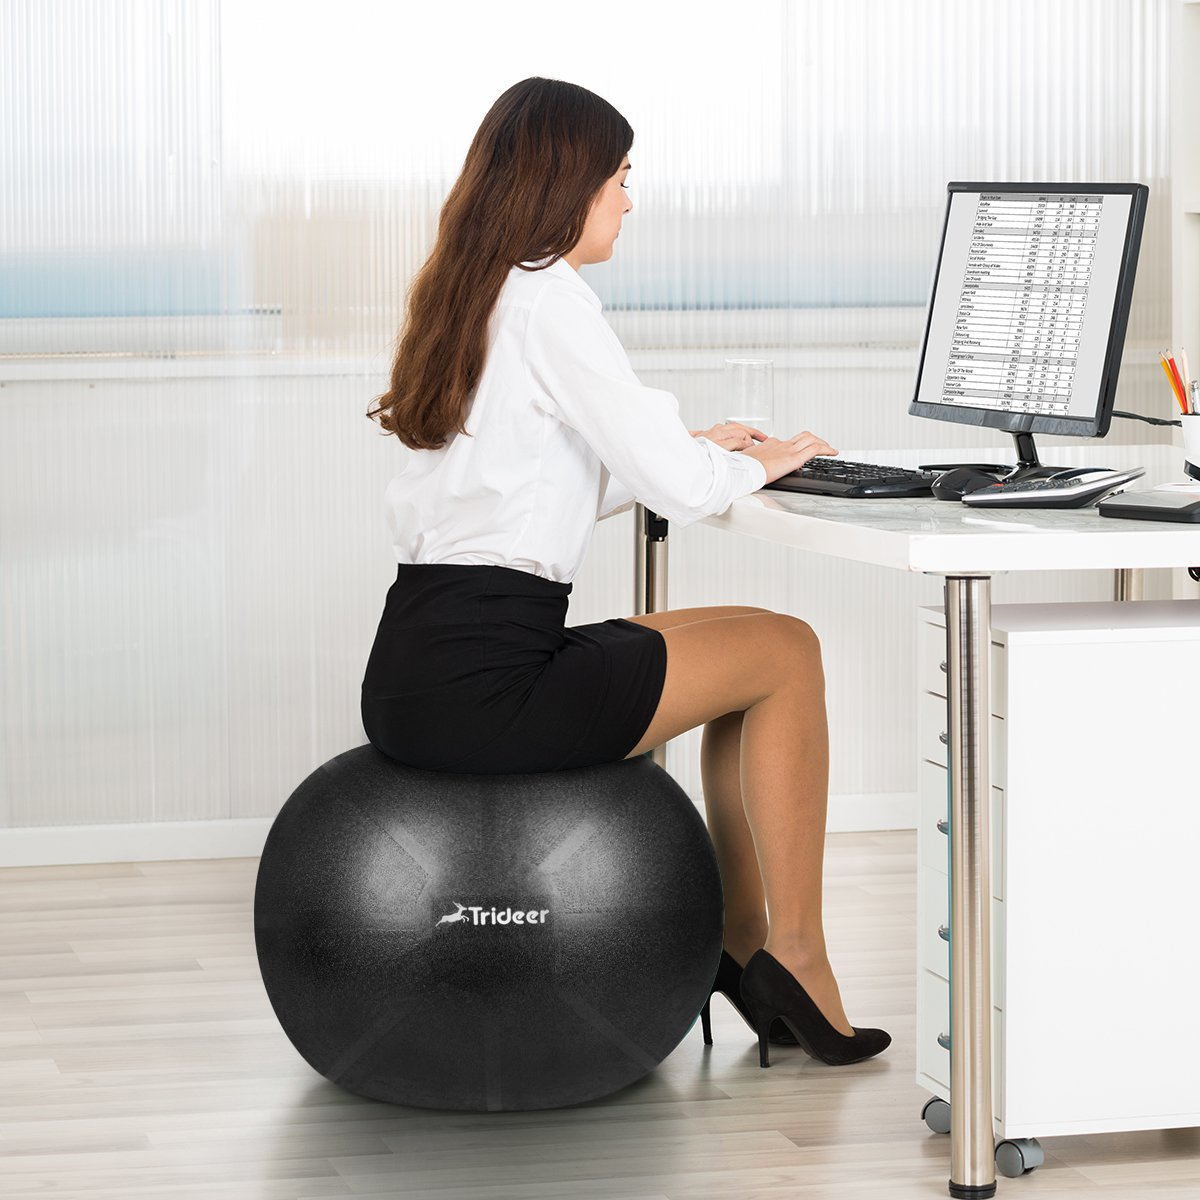 Trideer Exercise Ball (Multiple Color), Yoga Ball, Birthing Ball with Quick Pump, Anti-Burst & Extra Thick, Heavy Duty Ball Chair, Stability Ball Supports 2200lbs by Trideer (Image #9)